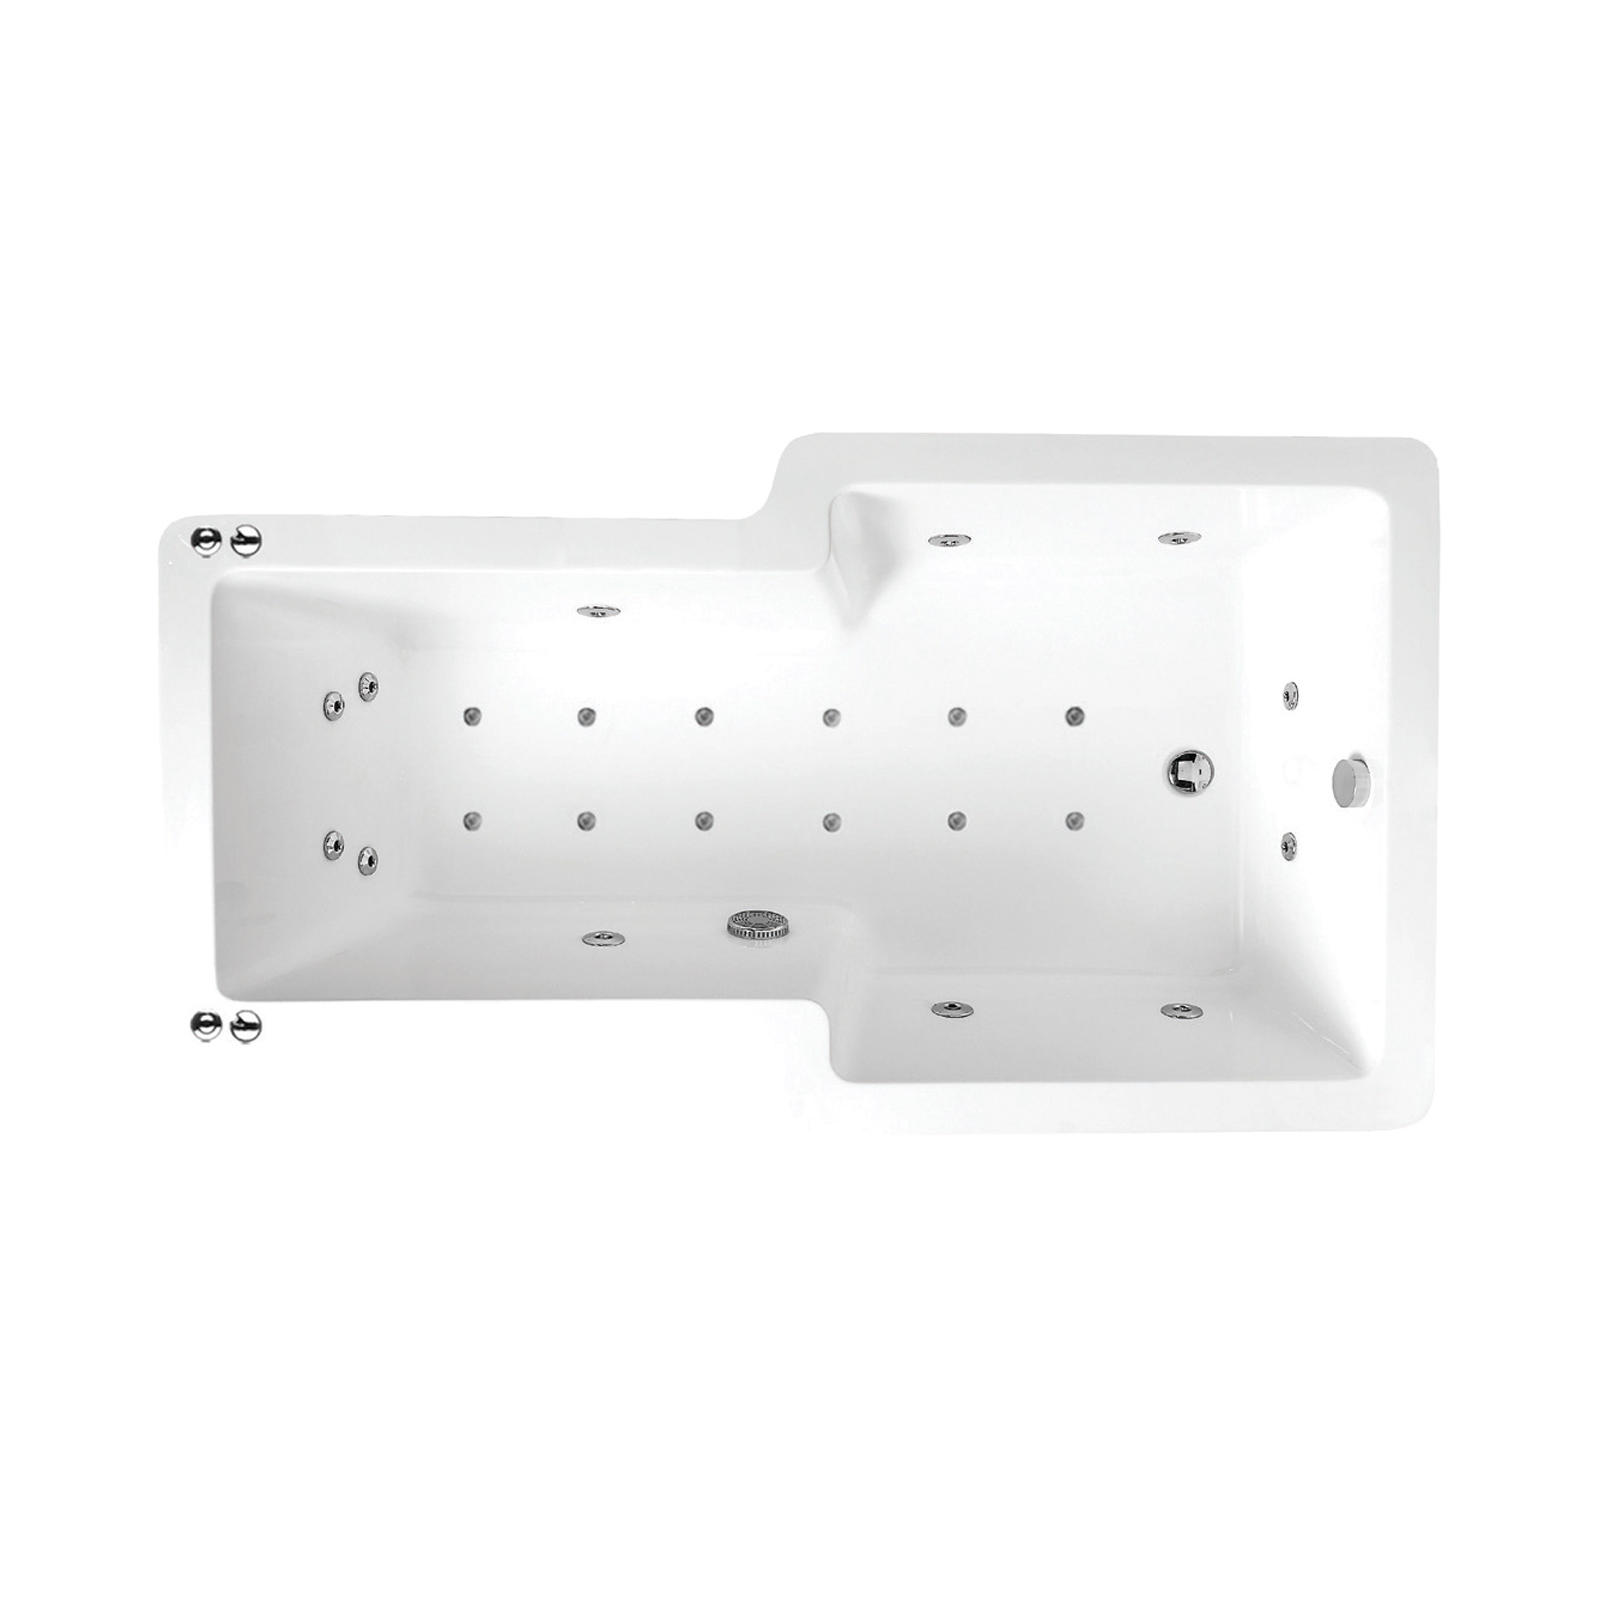 Body Zone Ceres 24 Jet Bath